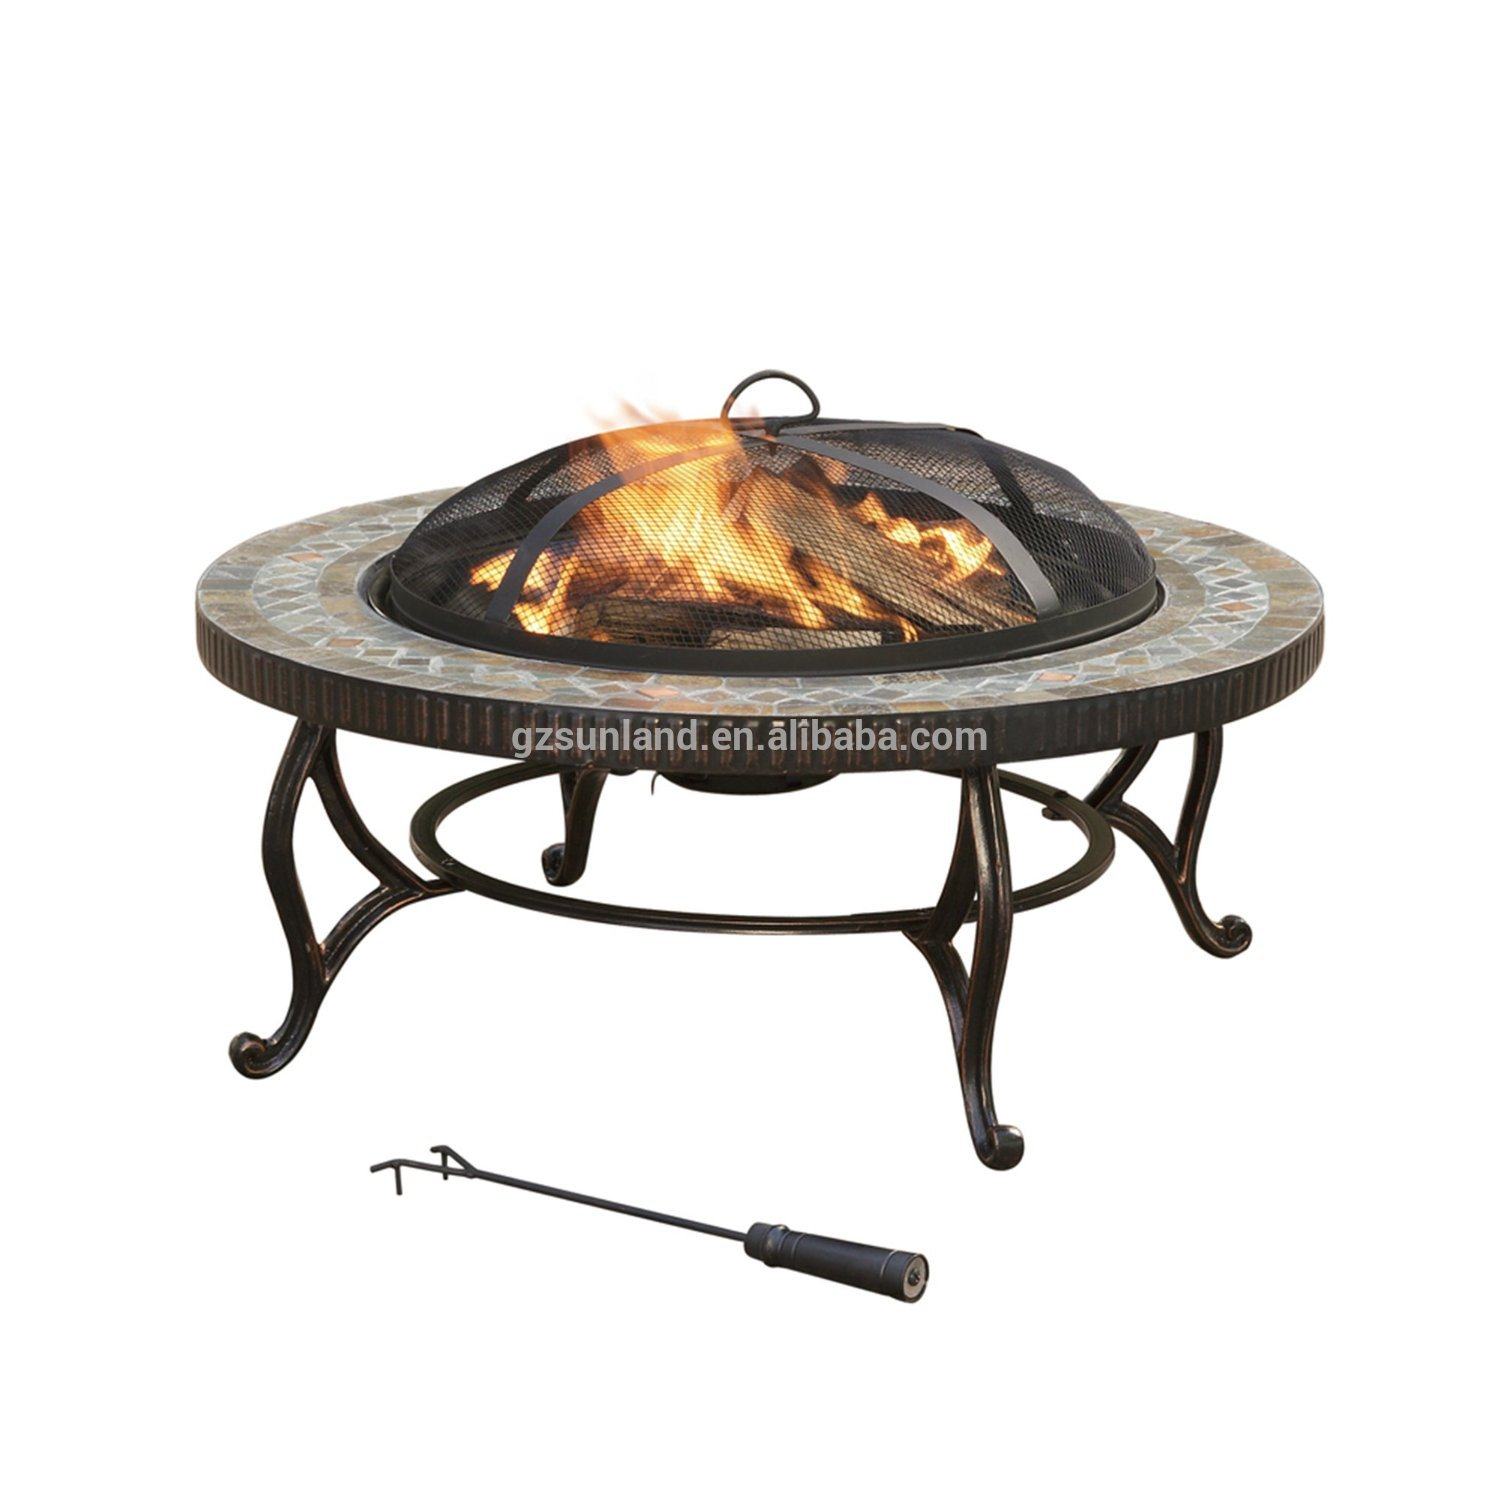 Elizabeth Natural Slate Top Ceramic Fire Pit With Copper Accents within proportions 1500 X 1500